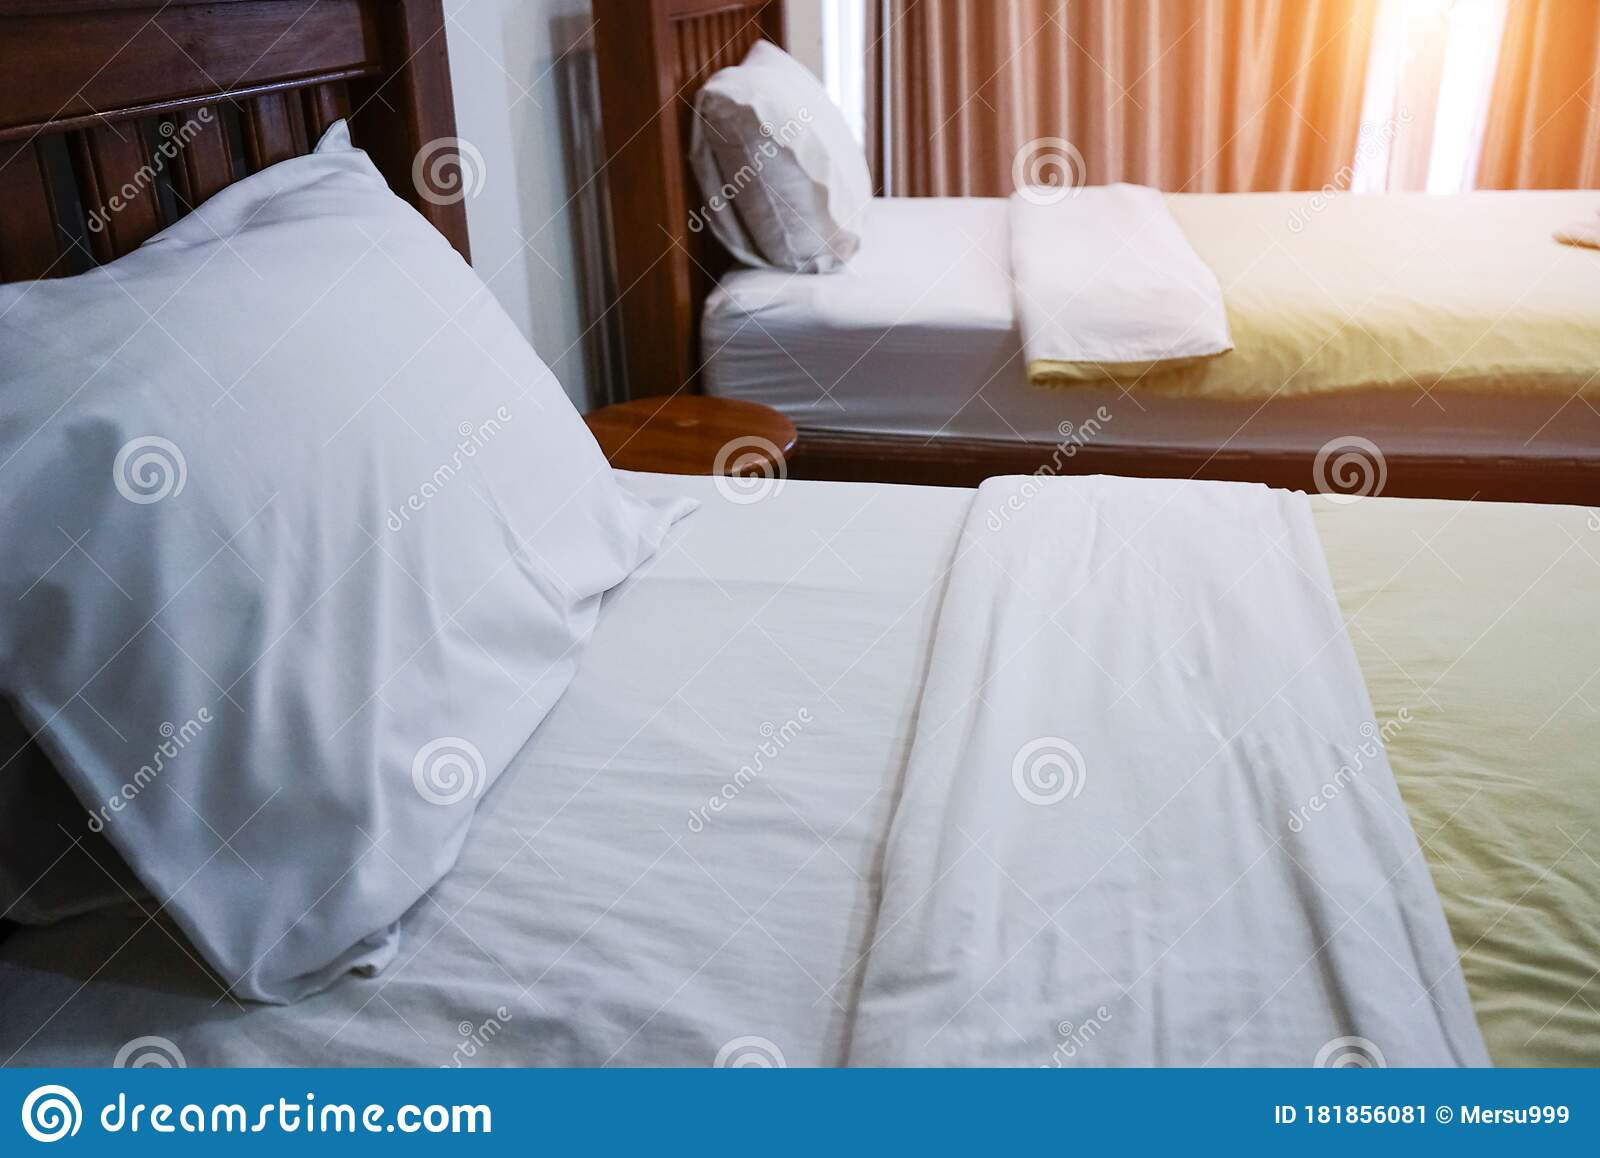 Picture of: Twin Bed With Wood Headboard Stock Image Image Of Home Household 181856081